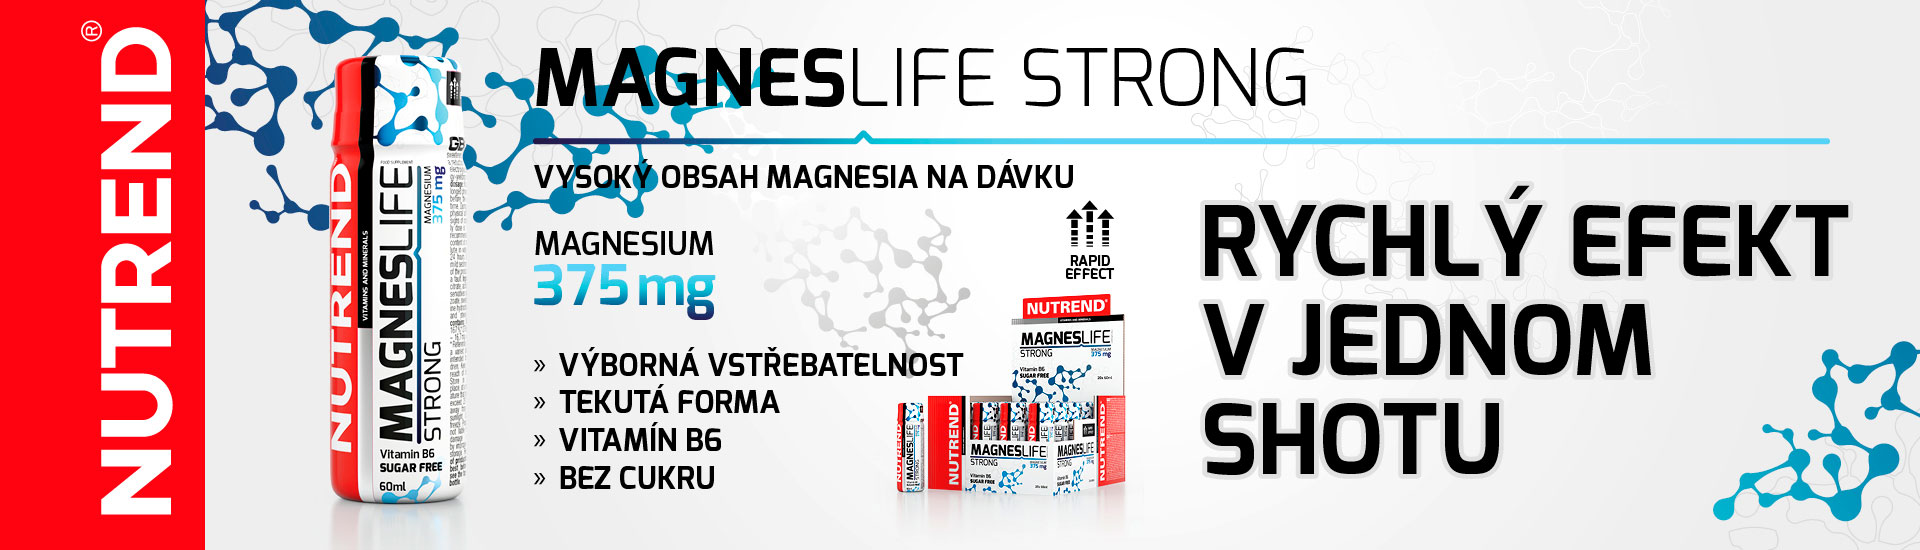 magneslife 60ml